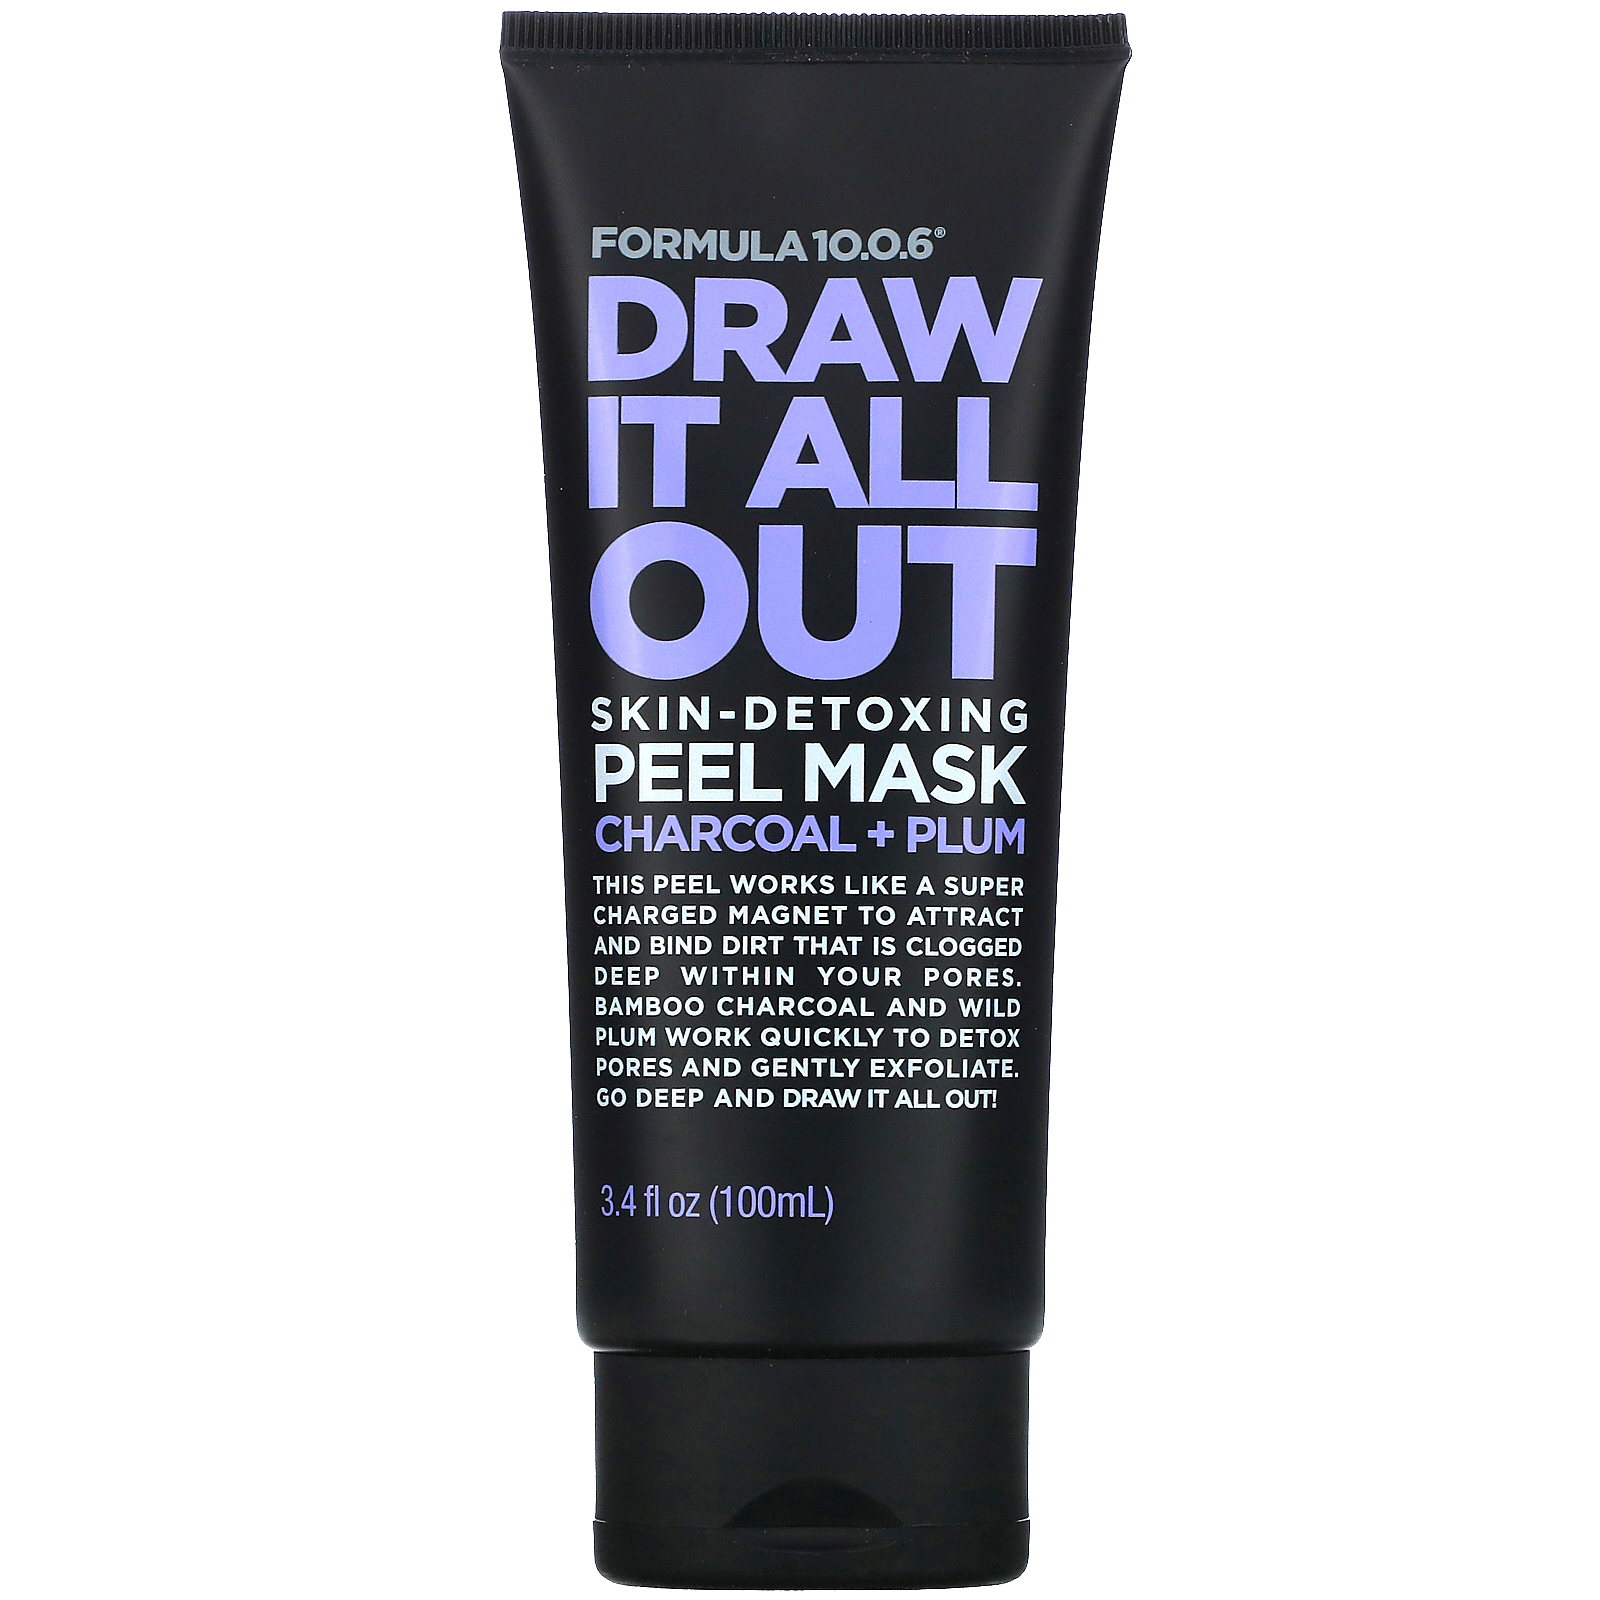 Formula 10.0.6, Draw It All Out, Skin-Detoxing Peel Mask, Charcoal + Plum, 3.4 fl oz (100 ml)